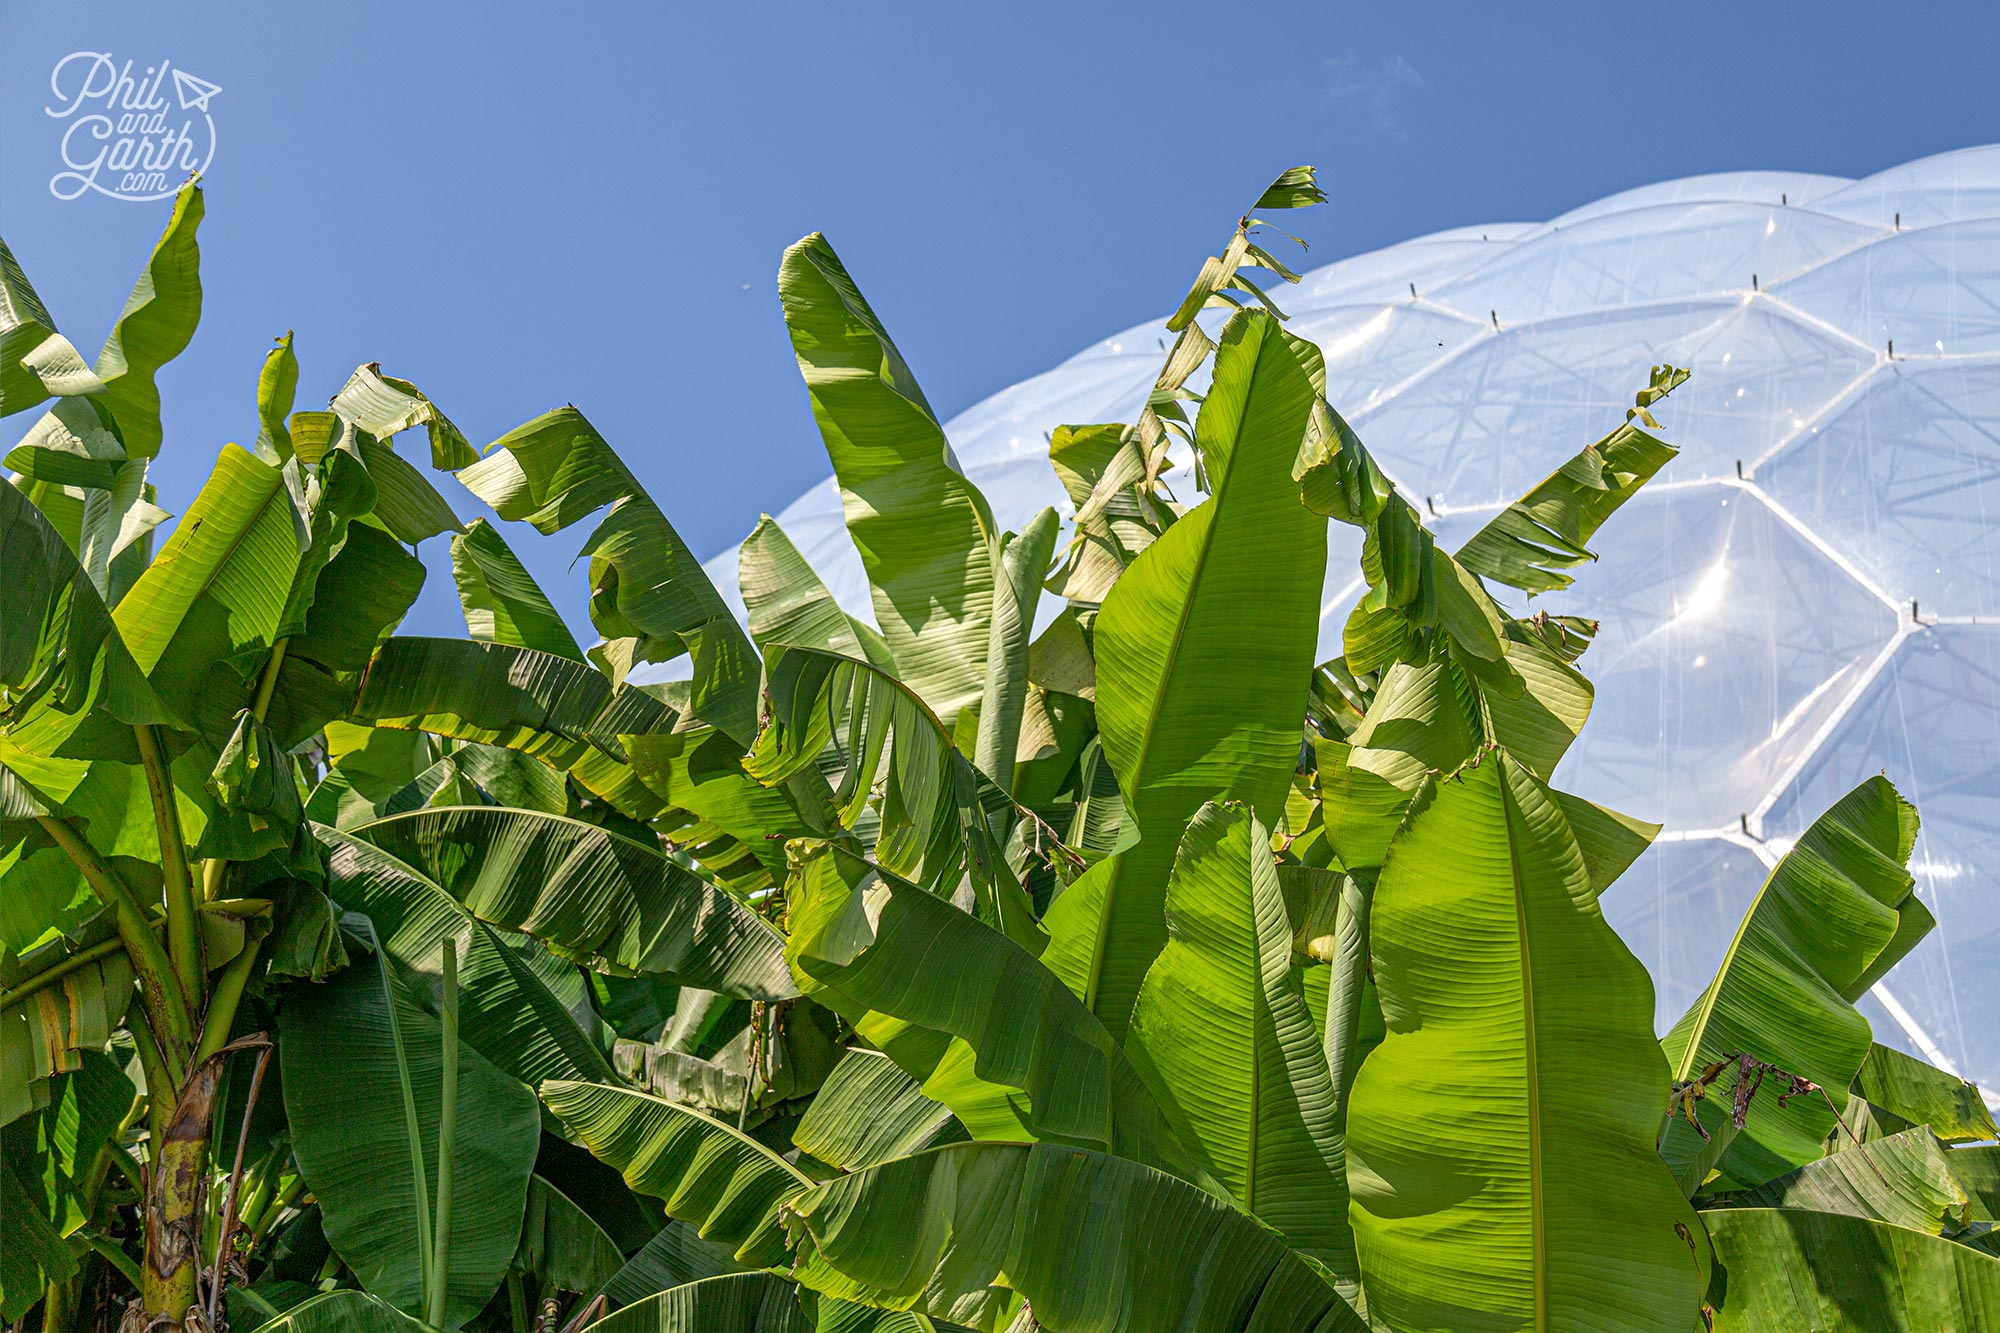 Amazing to see bananas growing in the middle of the English countryside